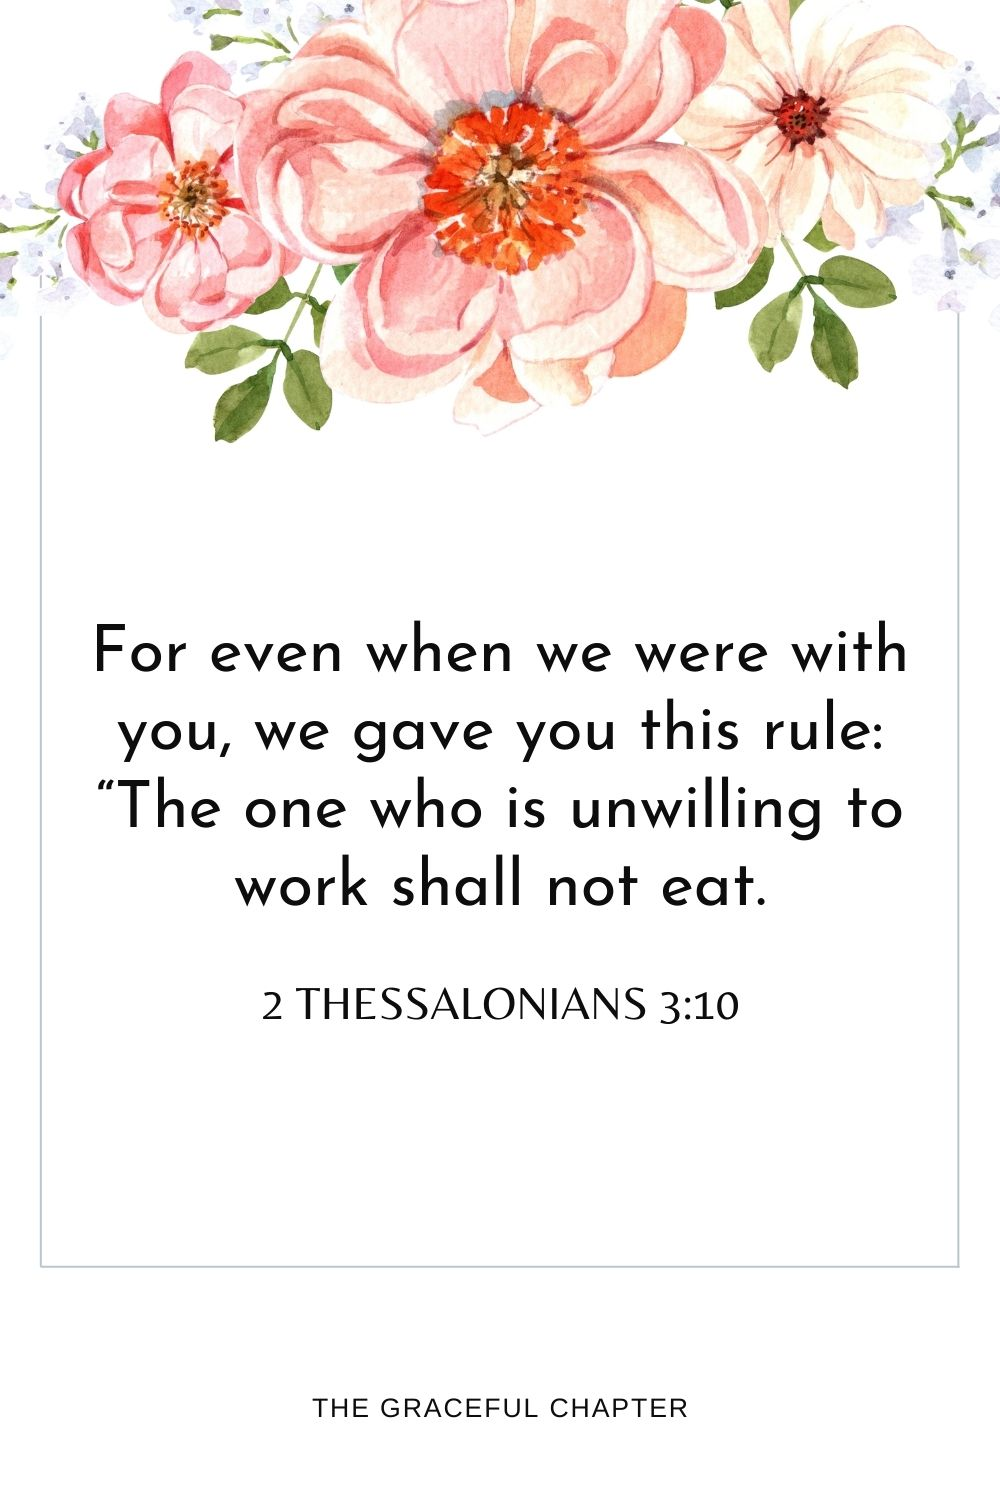 """For even when we were with you,we gave you this rule: """"The one who is unwilling to workshall not eat."""" 2 Thessalonians 3:10"""